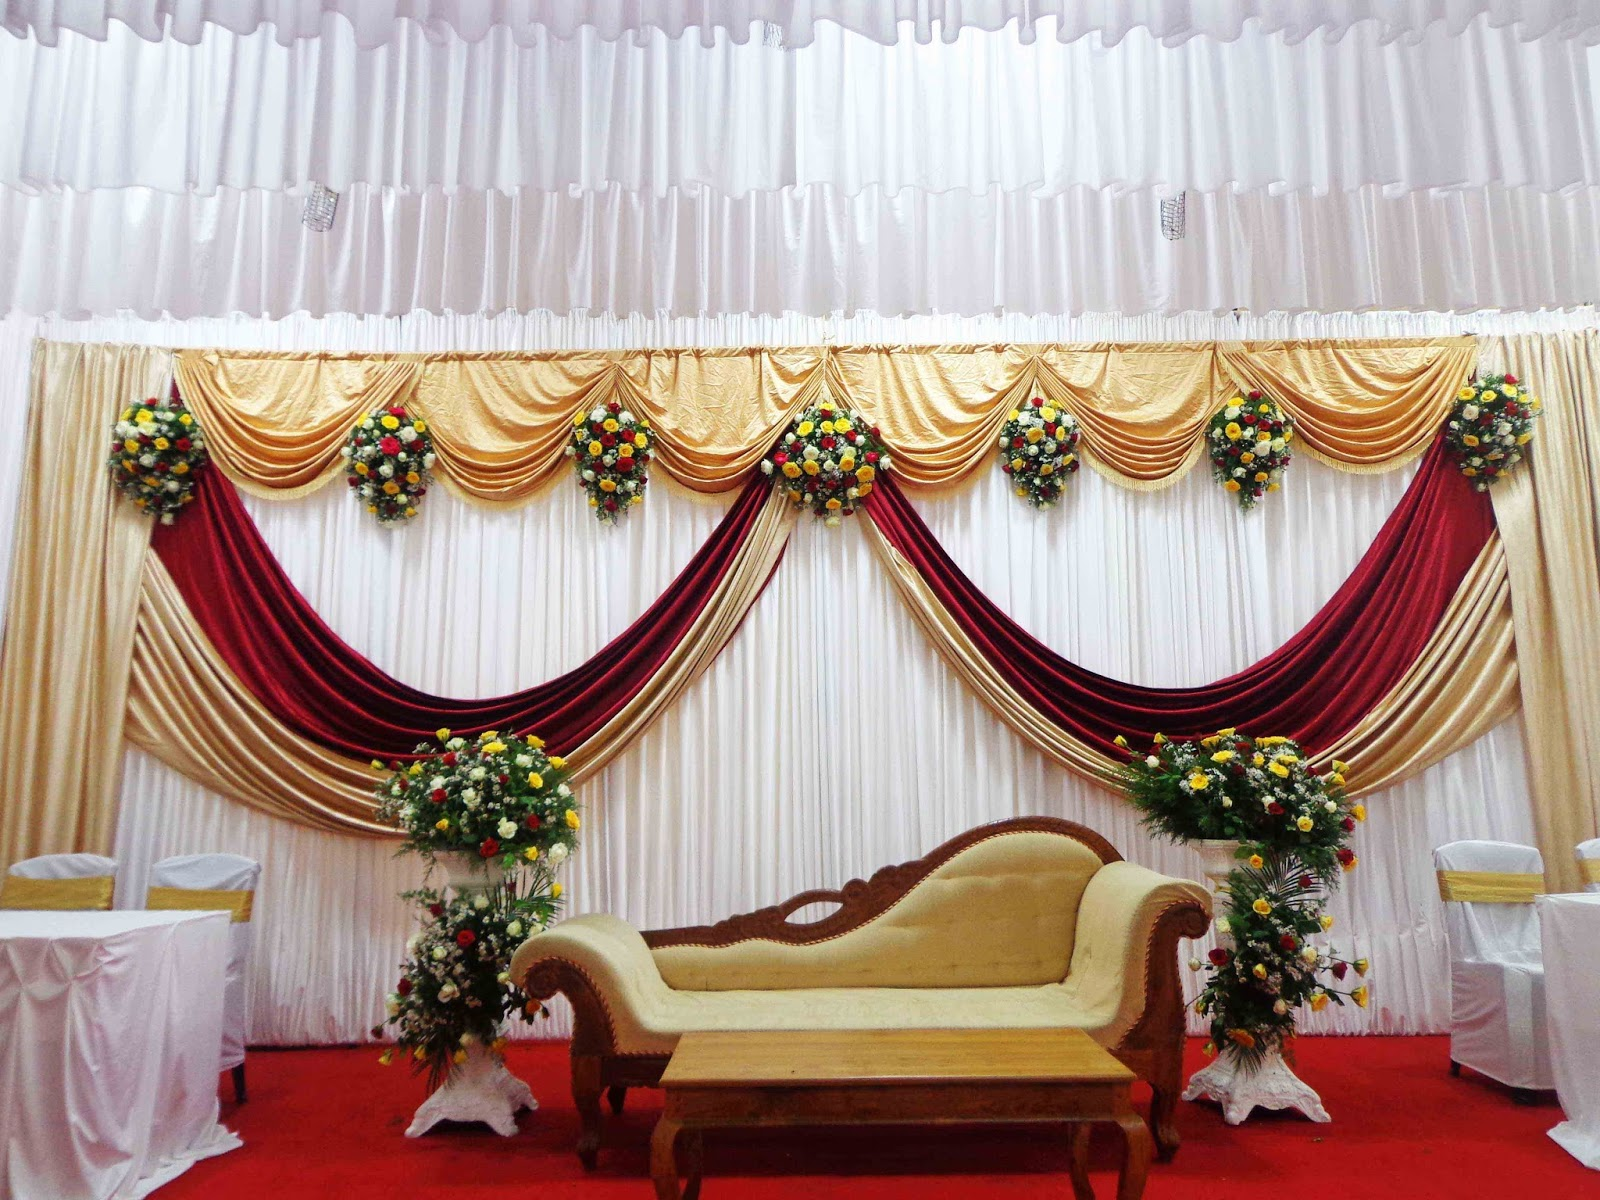 Most beautiful wedding stage decoration ideas designs 2015 for Marriage decoration photos